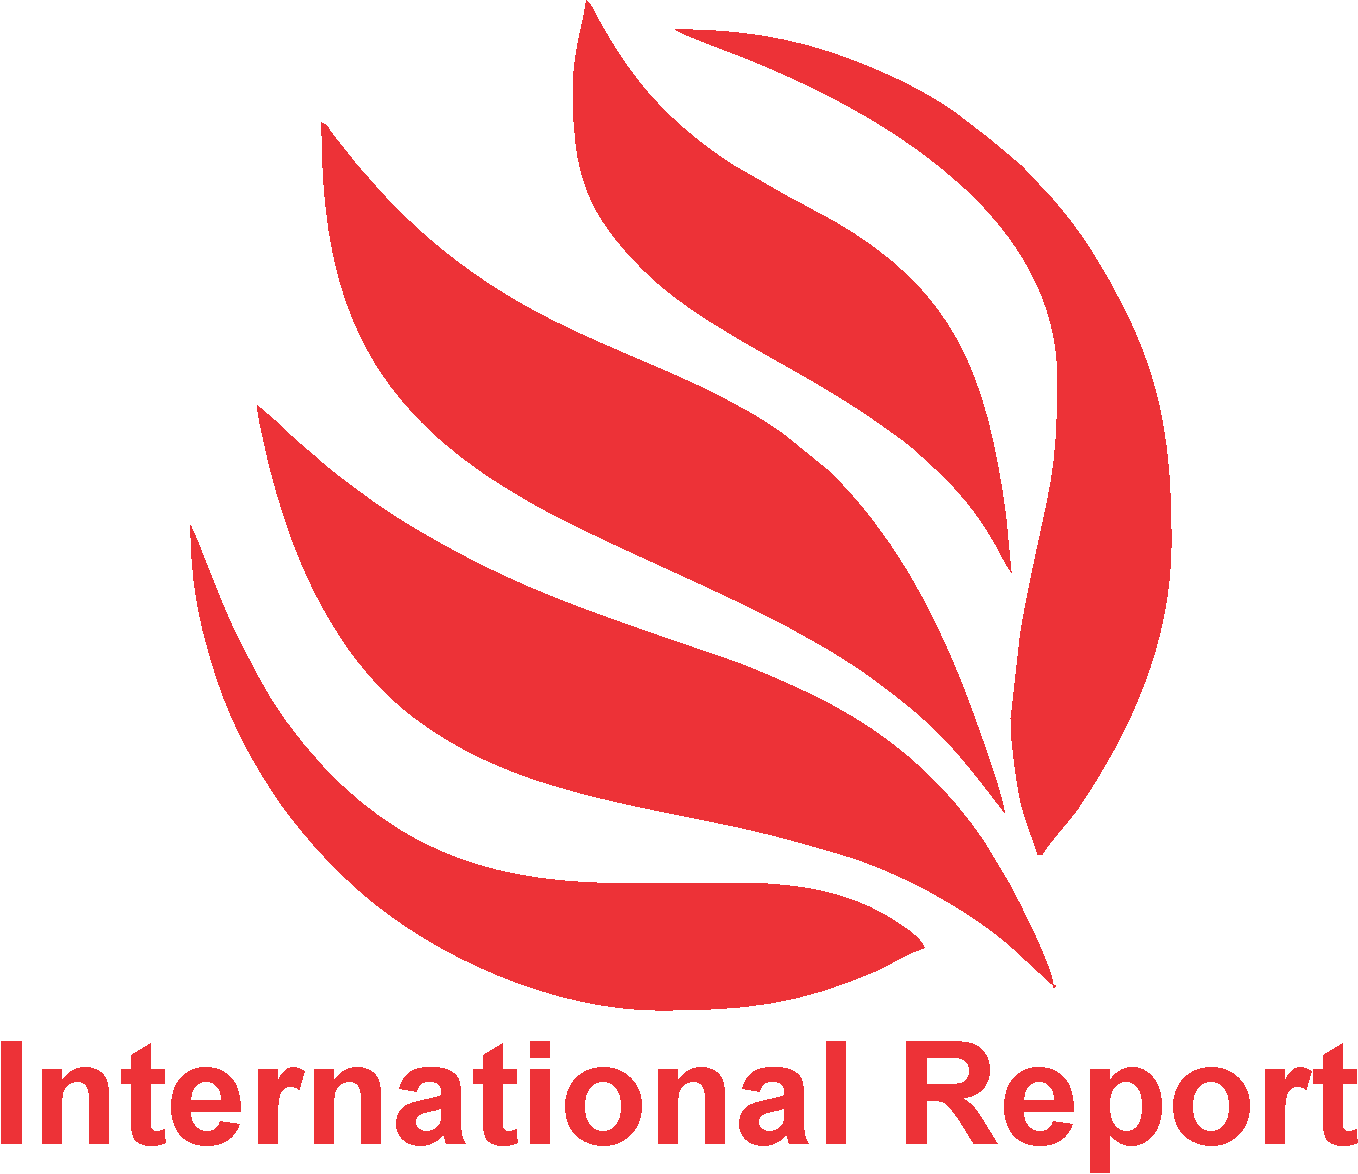 International Report